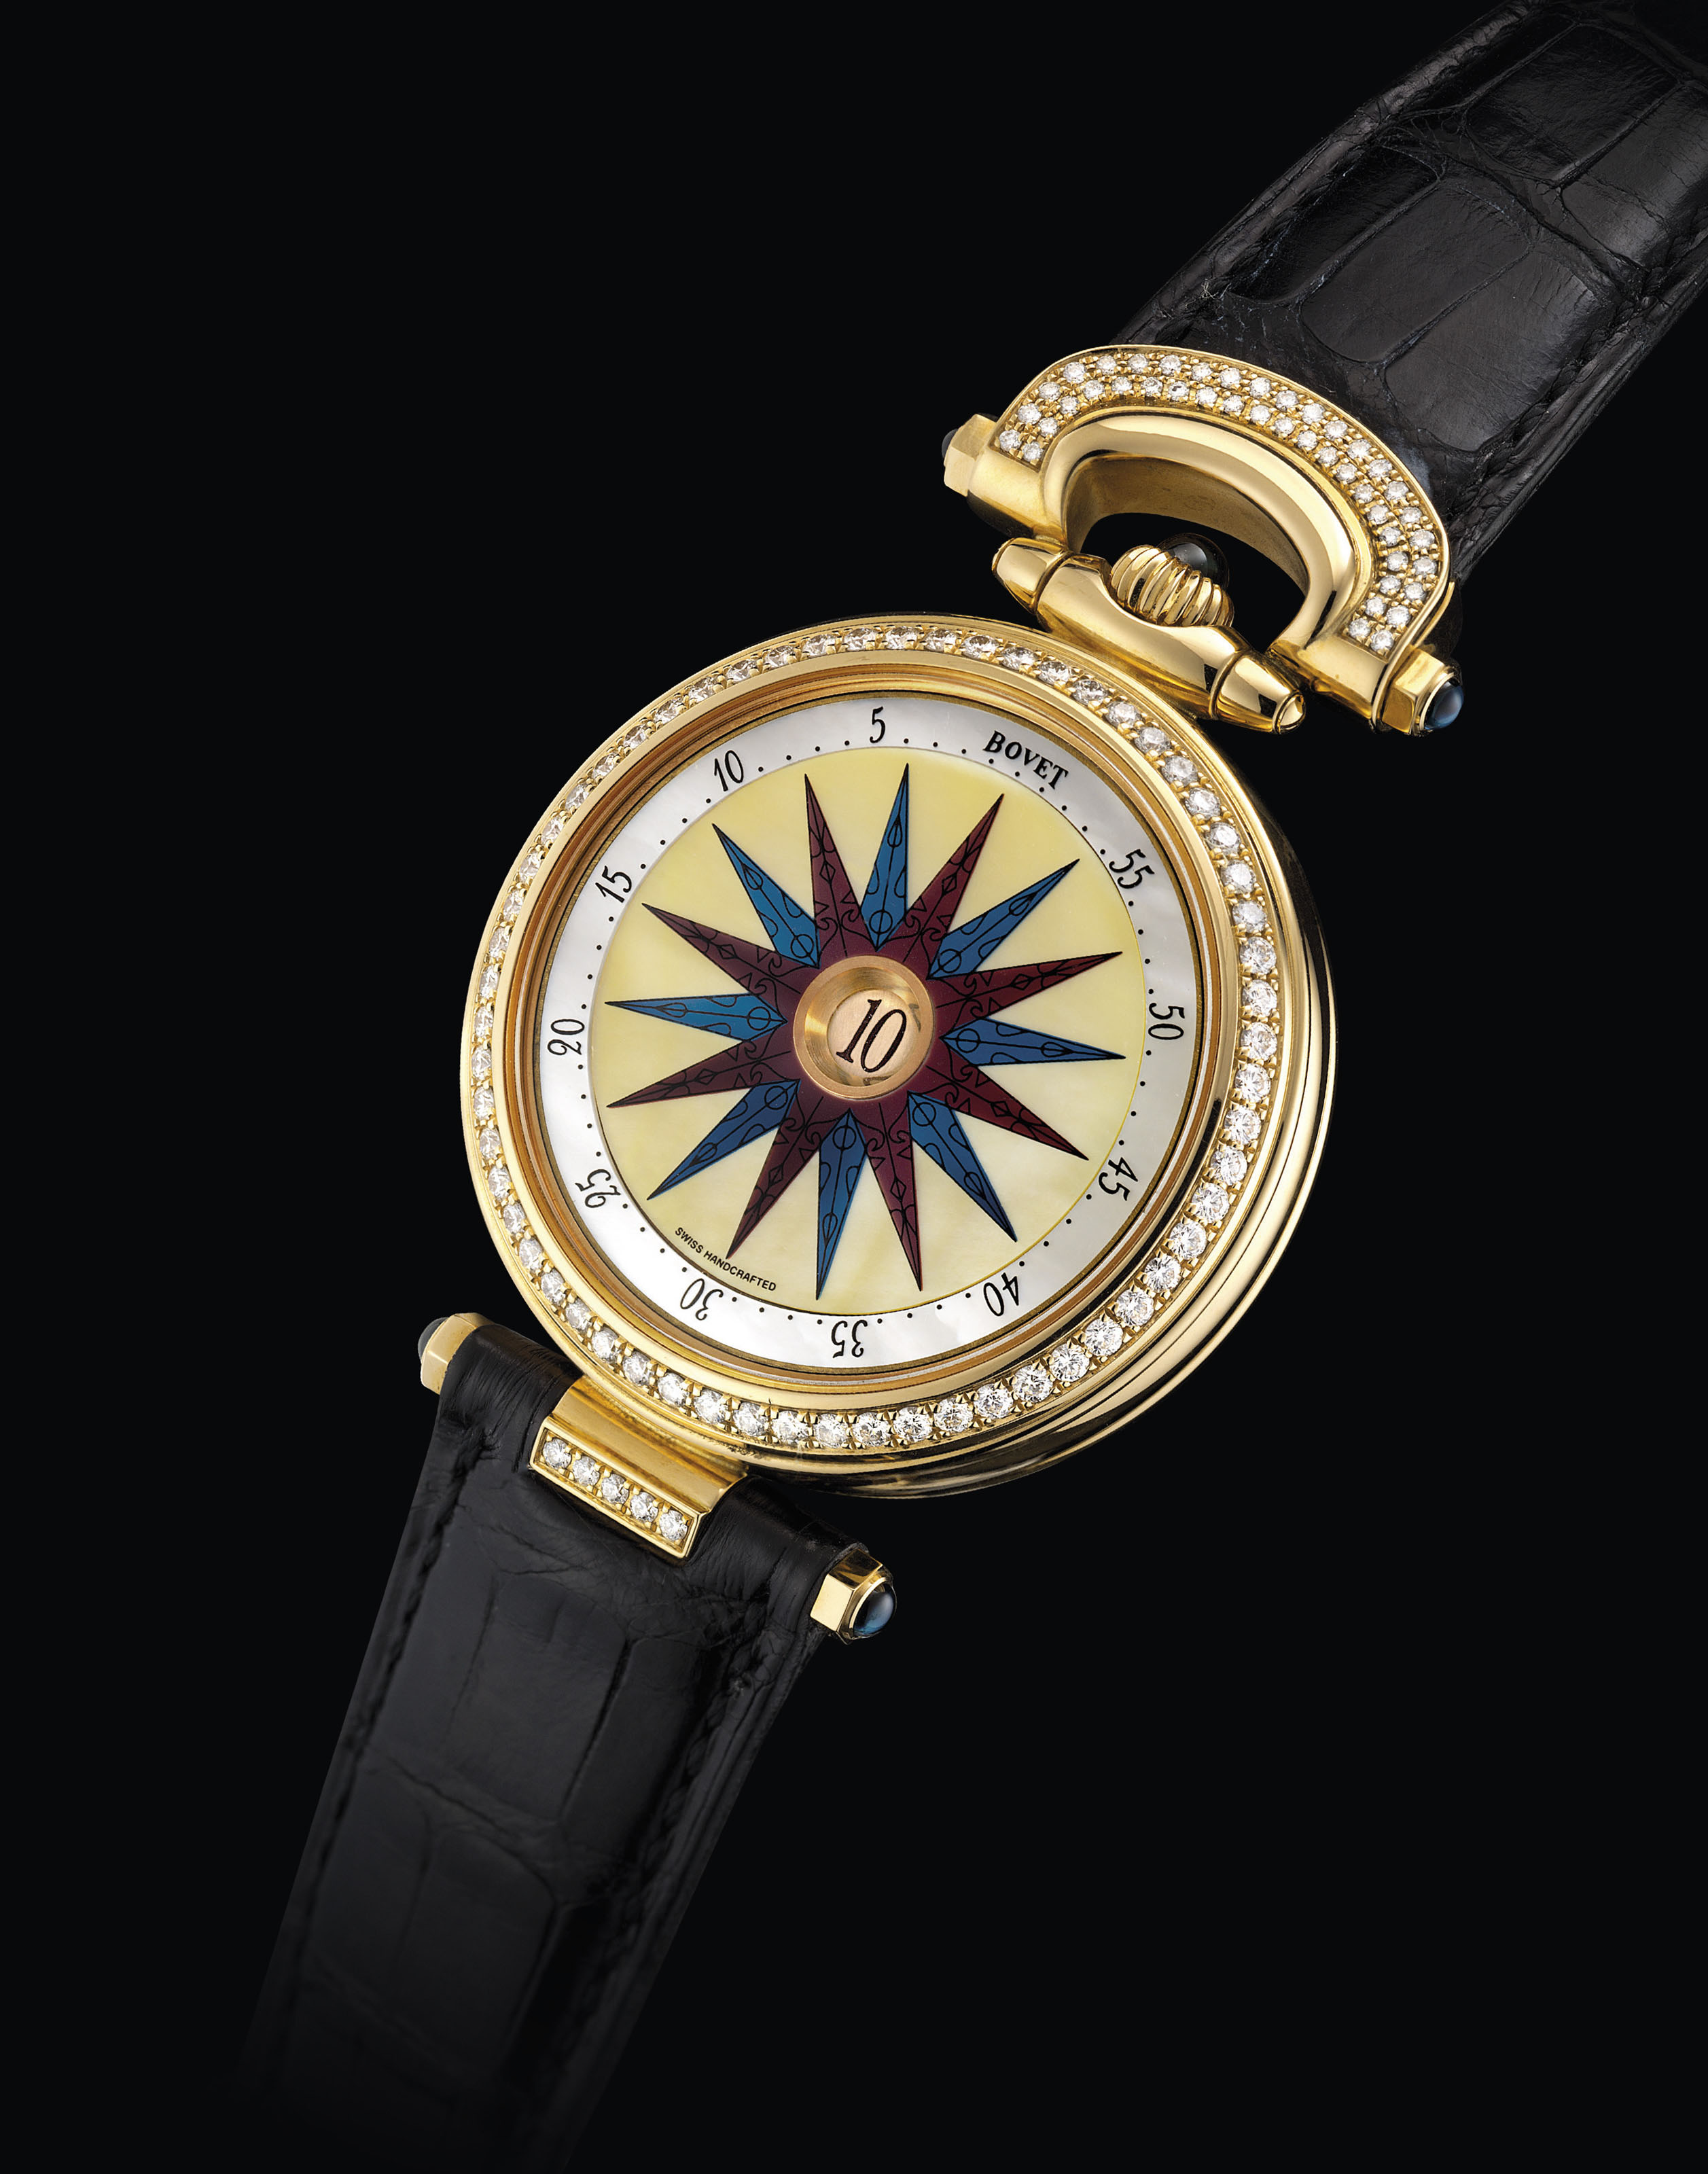 BOVET. A FINE AND UNUSUAL 18K